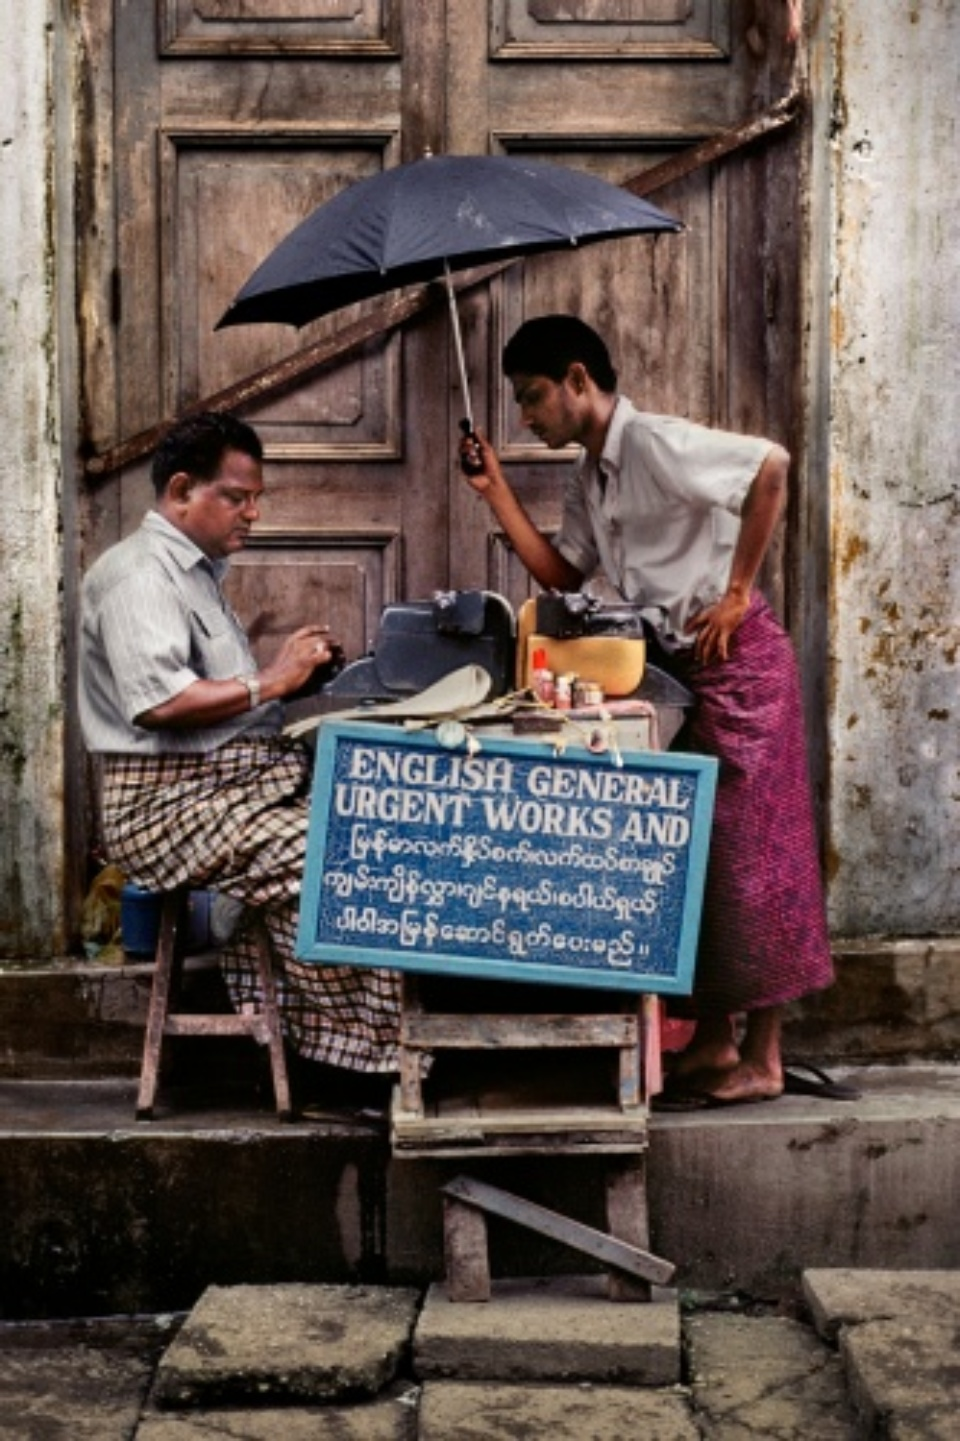 Steve McCurry: Typist, Rangoon Burma, 1994 C-print on Fuji Crystal paper Signed, titled, dated and numbered 60 x 50 cm Editioned